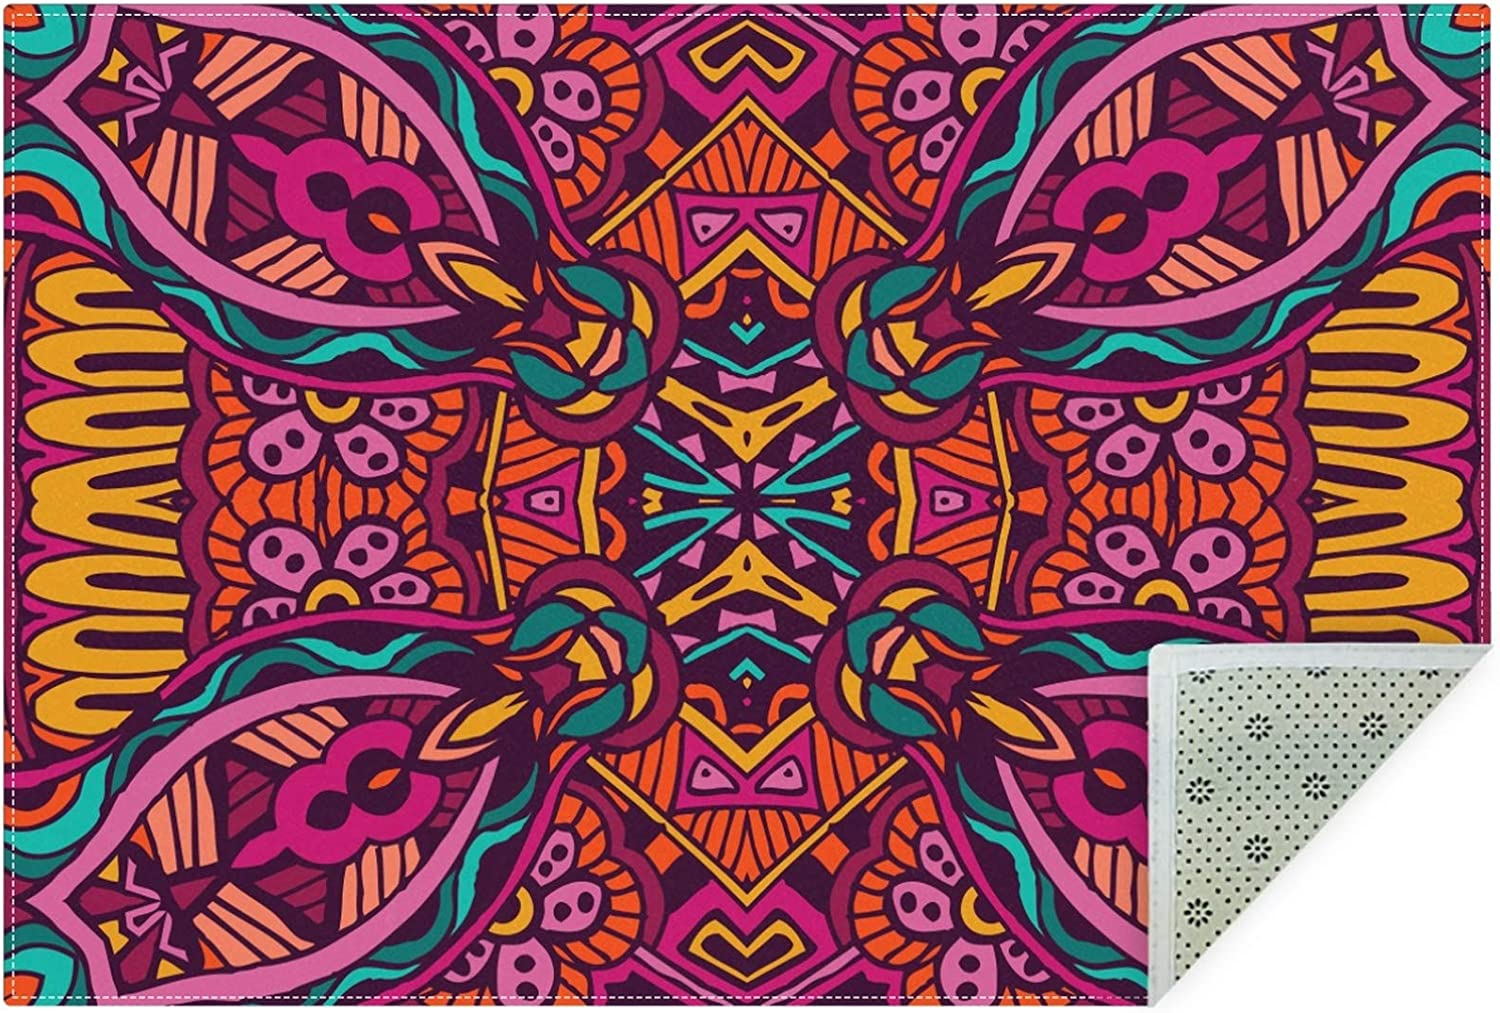 Vintage Ethnic Boho Flower Large Area Popular overseas Rugs Non-Slip Feet R 3x5 70% OFF Outlet